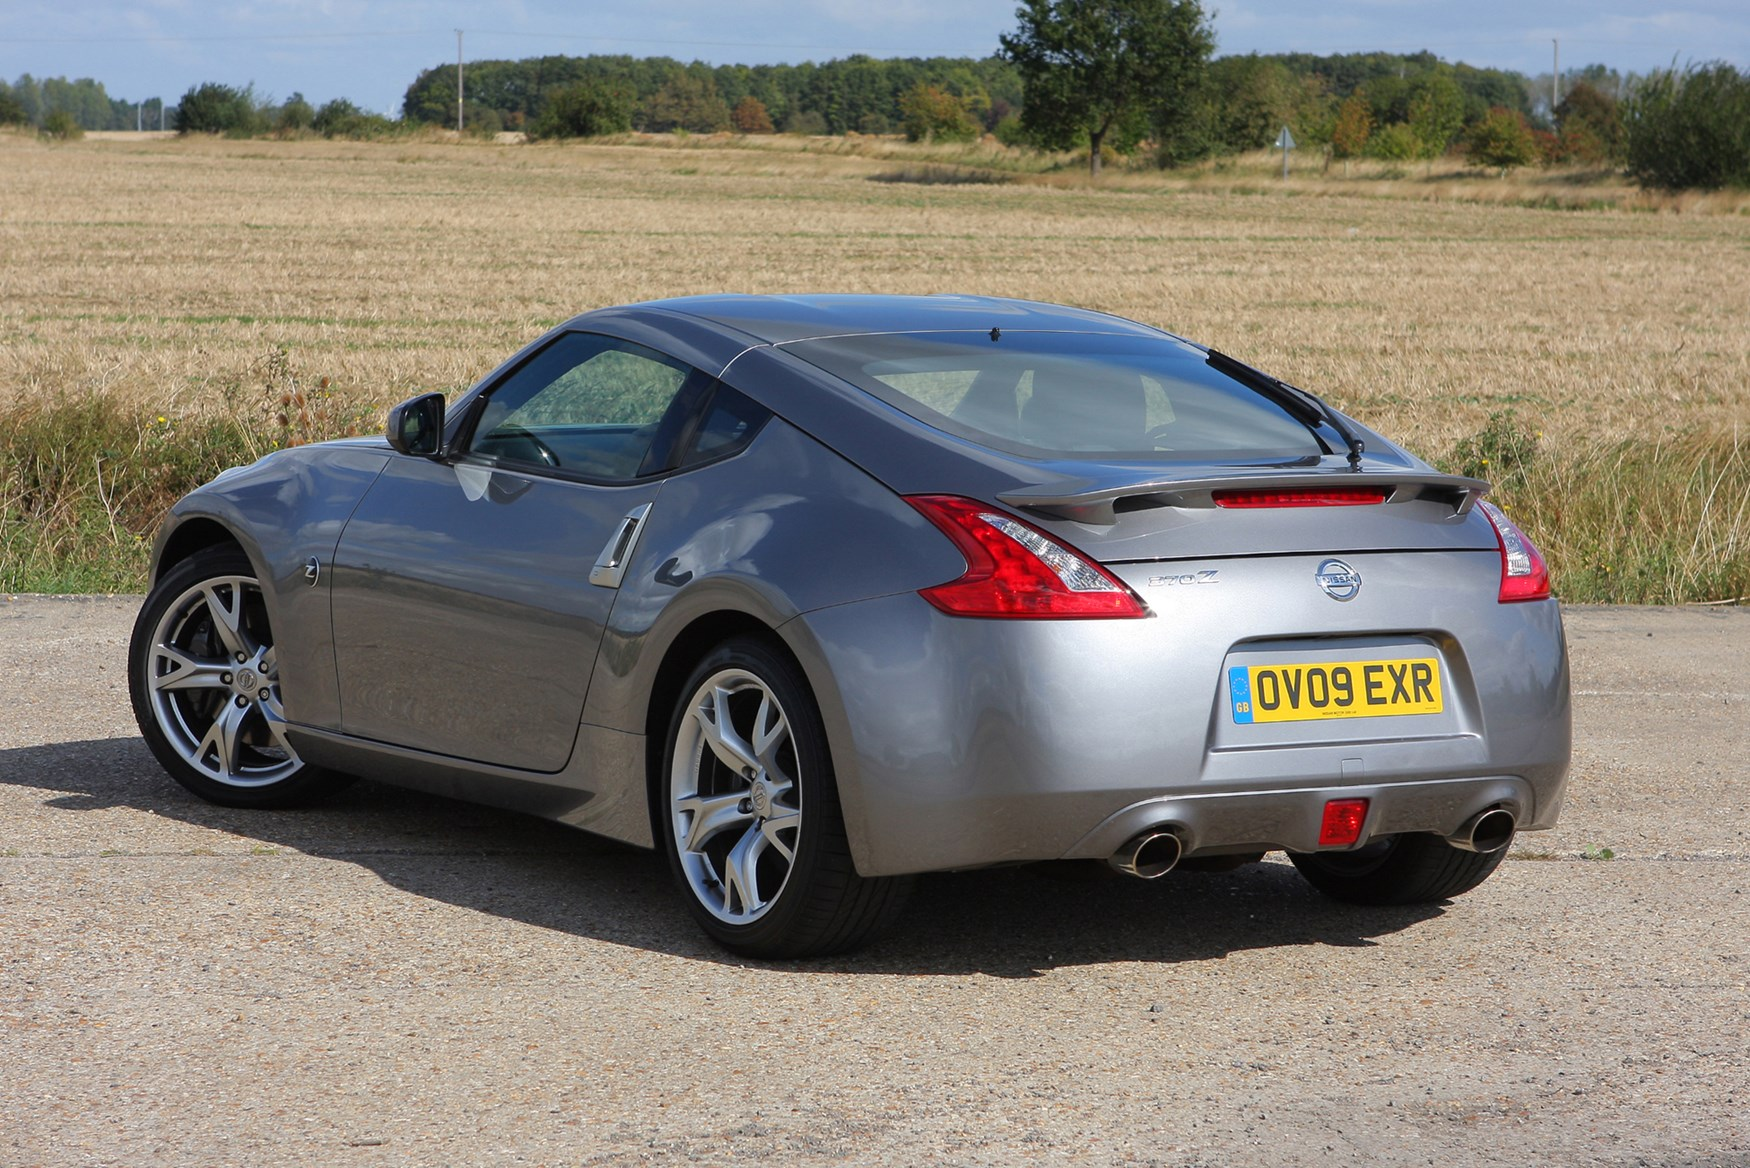 Nissan 370Z Coupe (2009 - ) Photos | Parkers